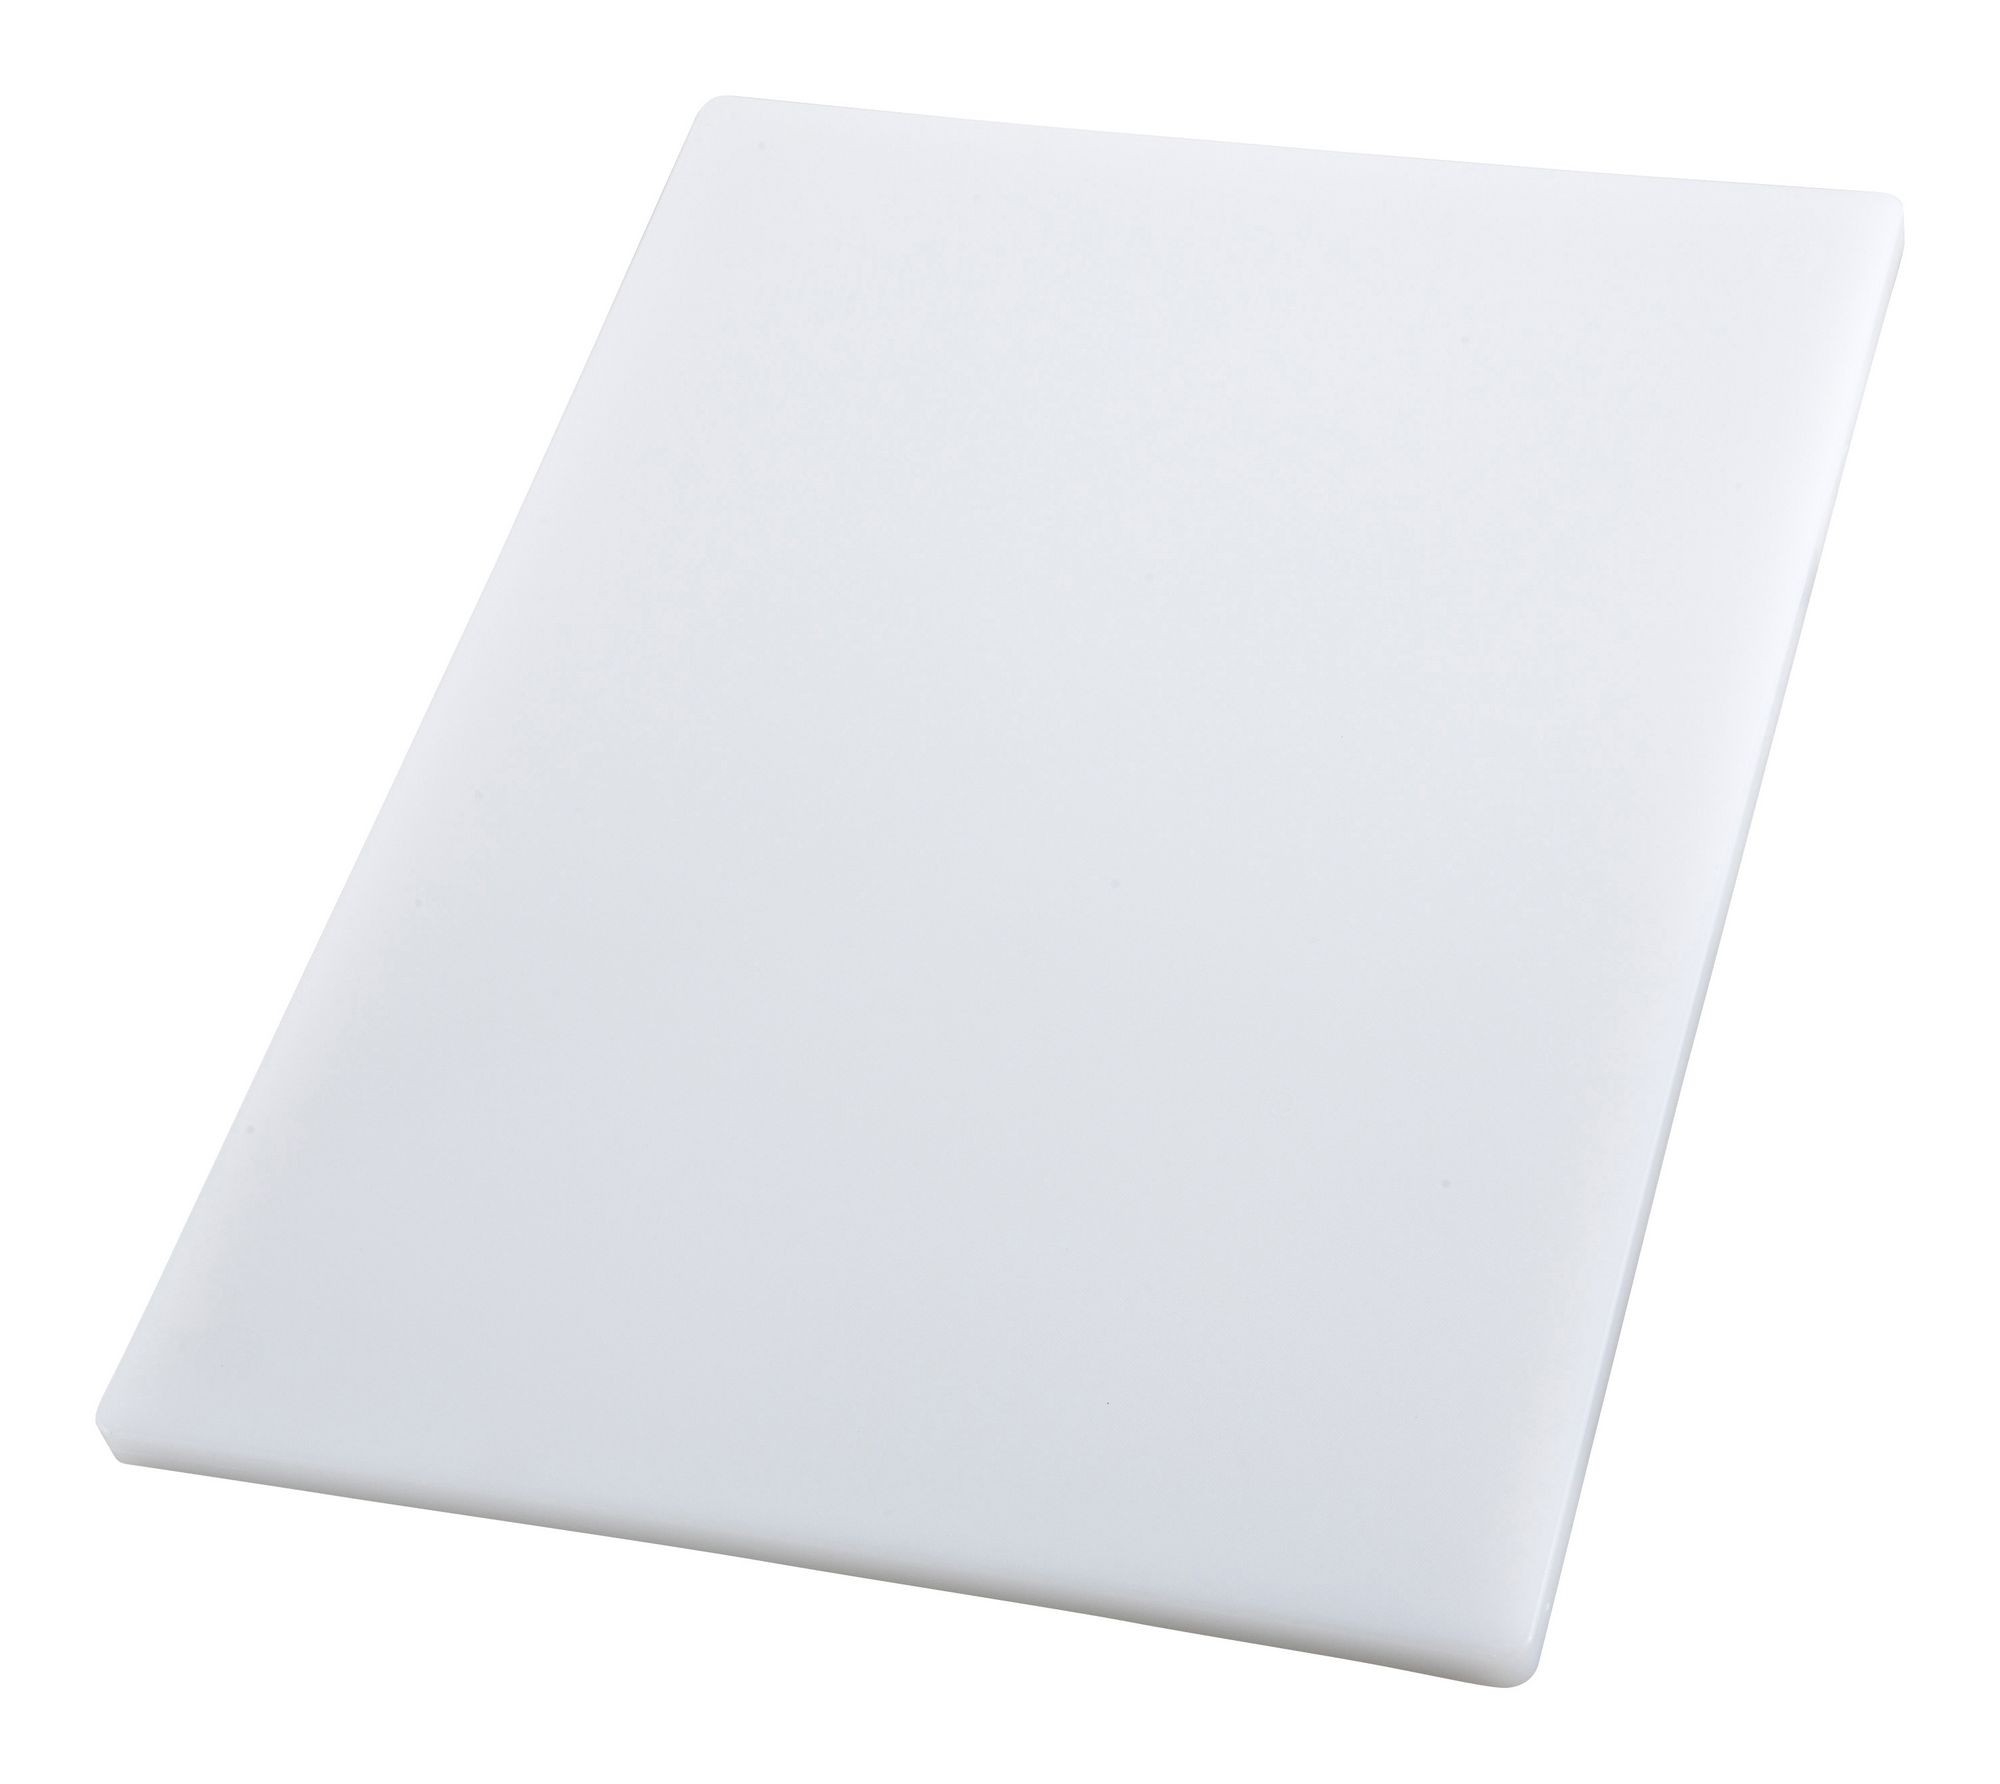 Thick White Cutting Board - 15 X 20 X 3/4